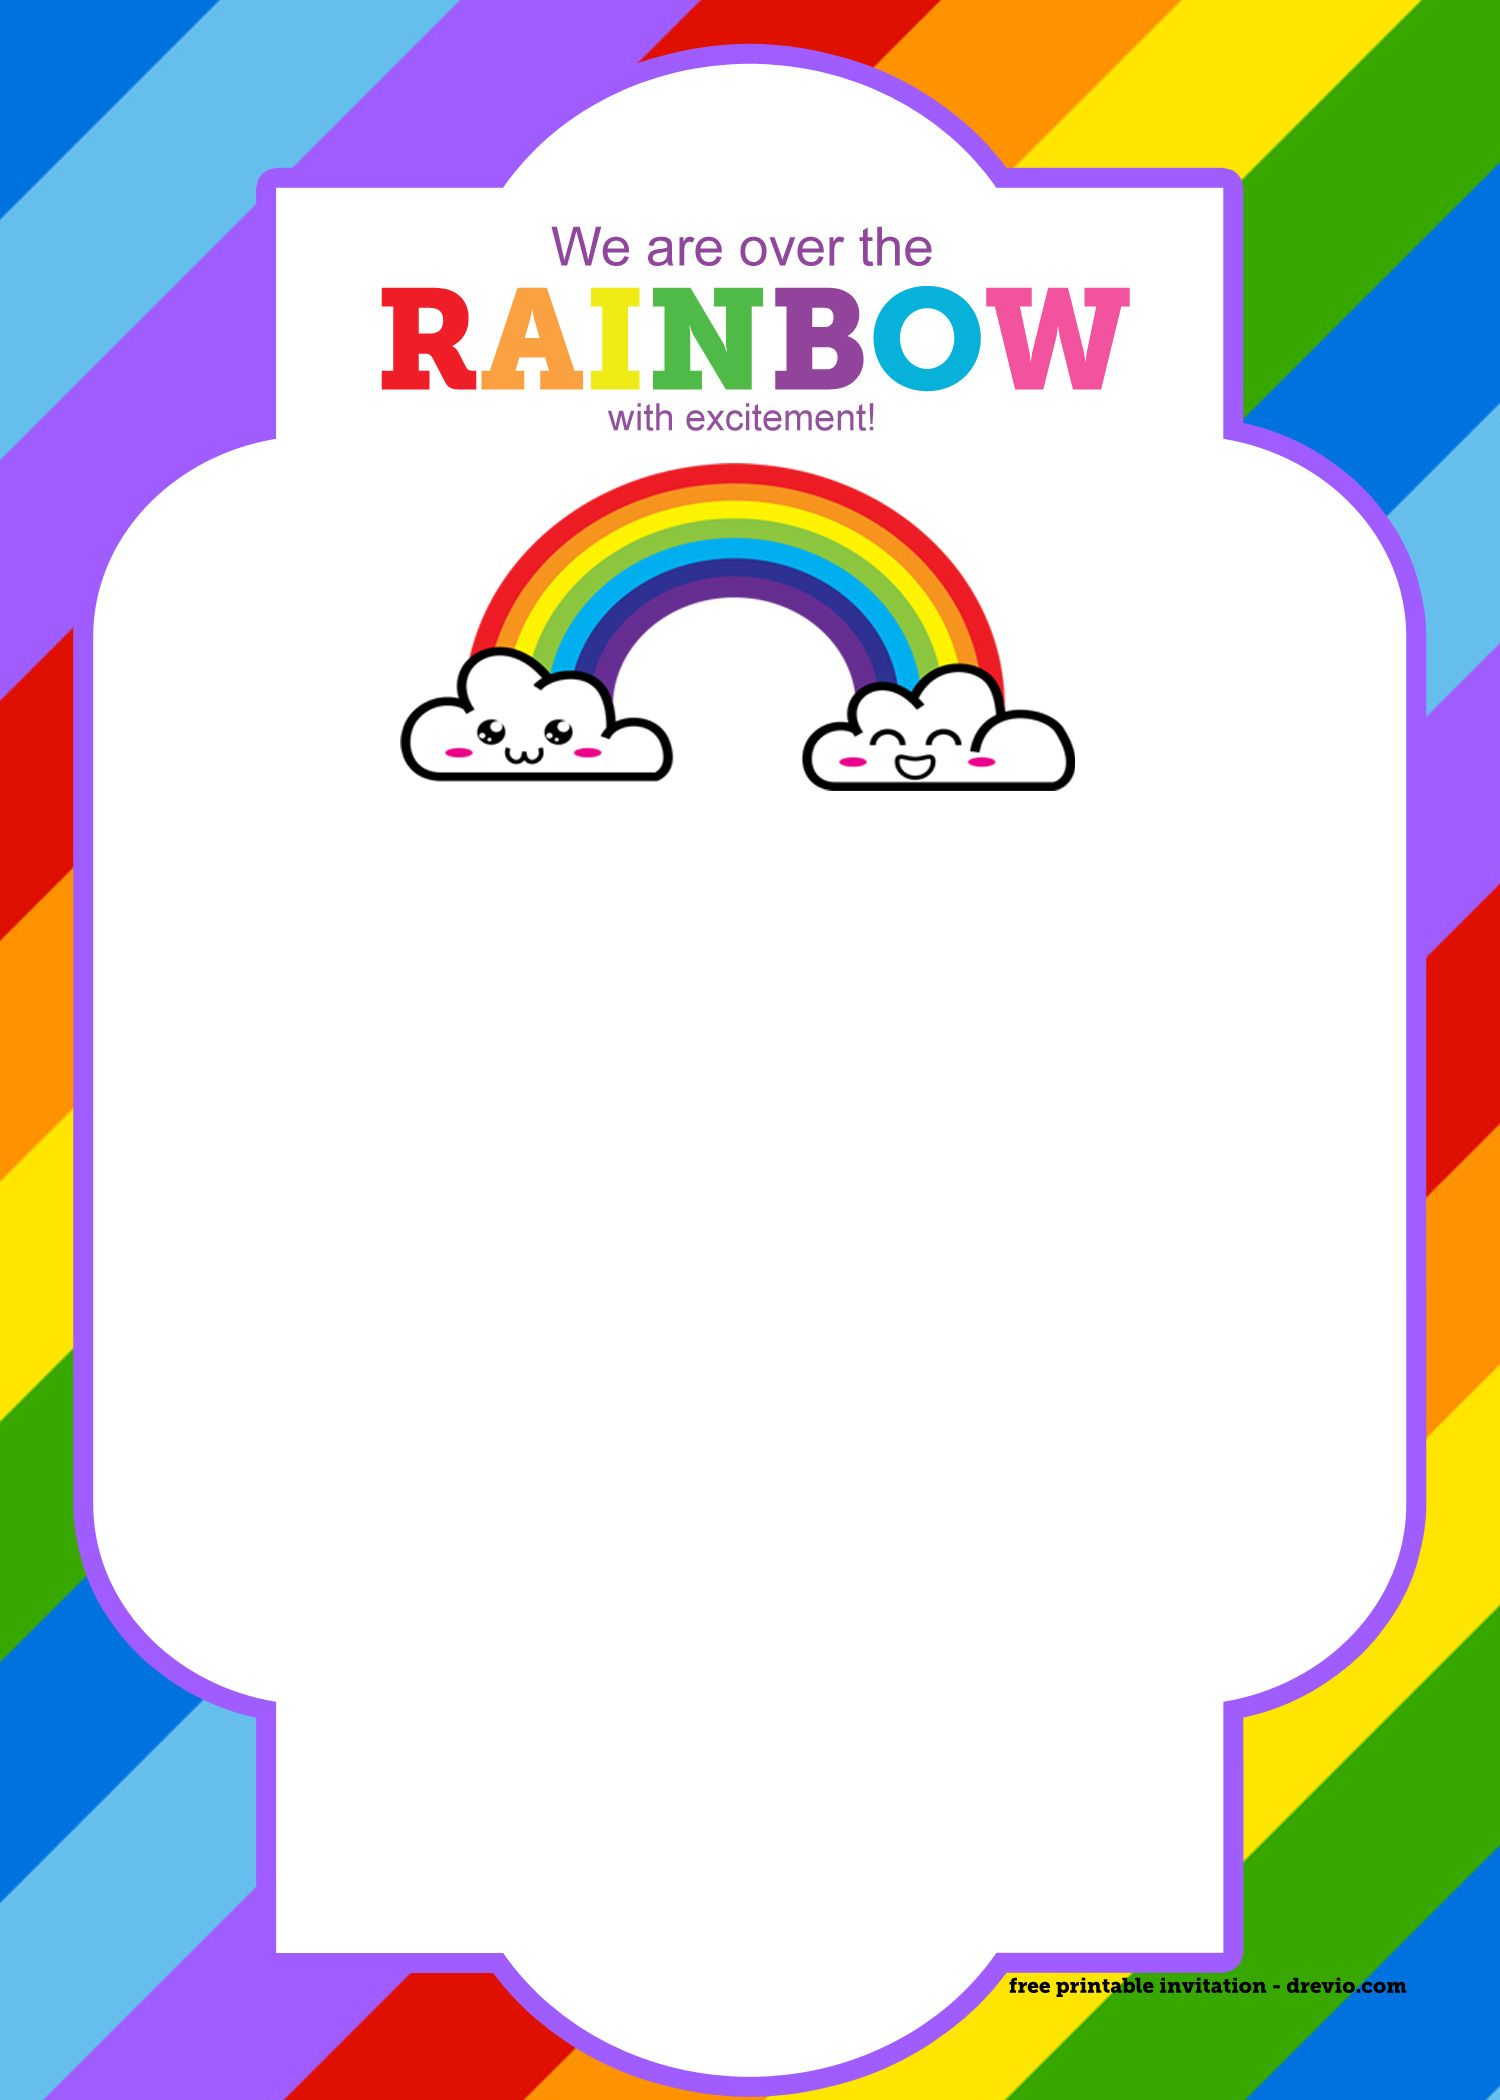 FREE Printable Rainbow Invitation Template + Thank You.